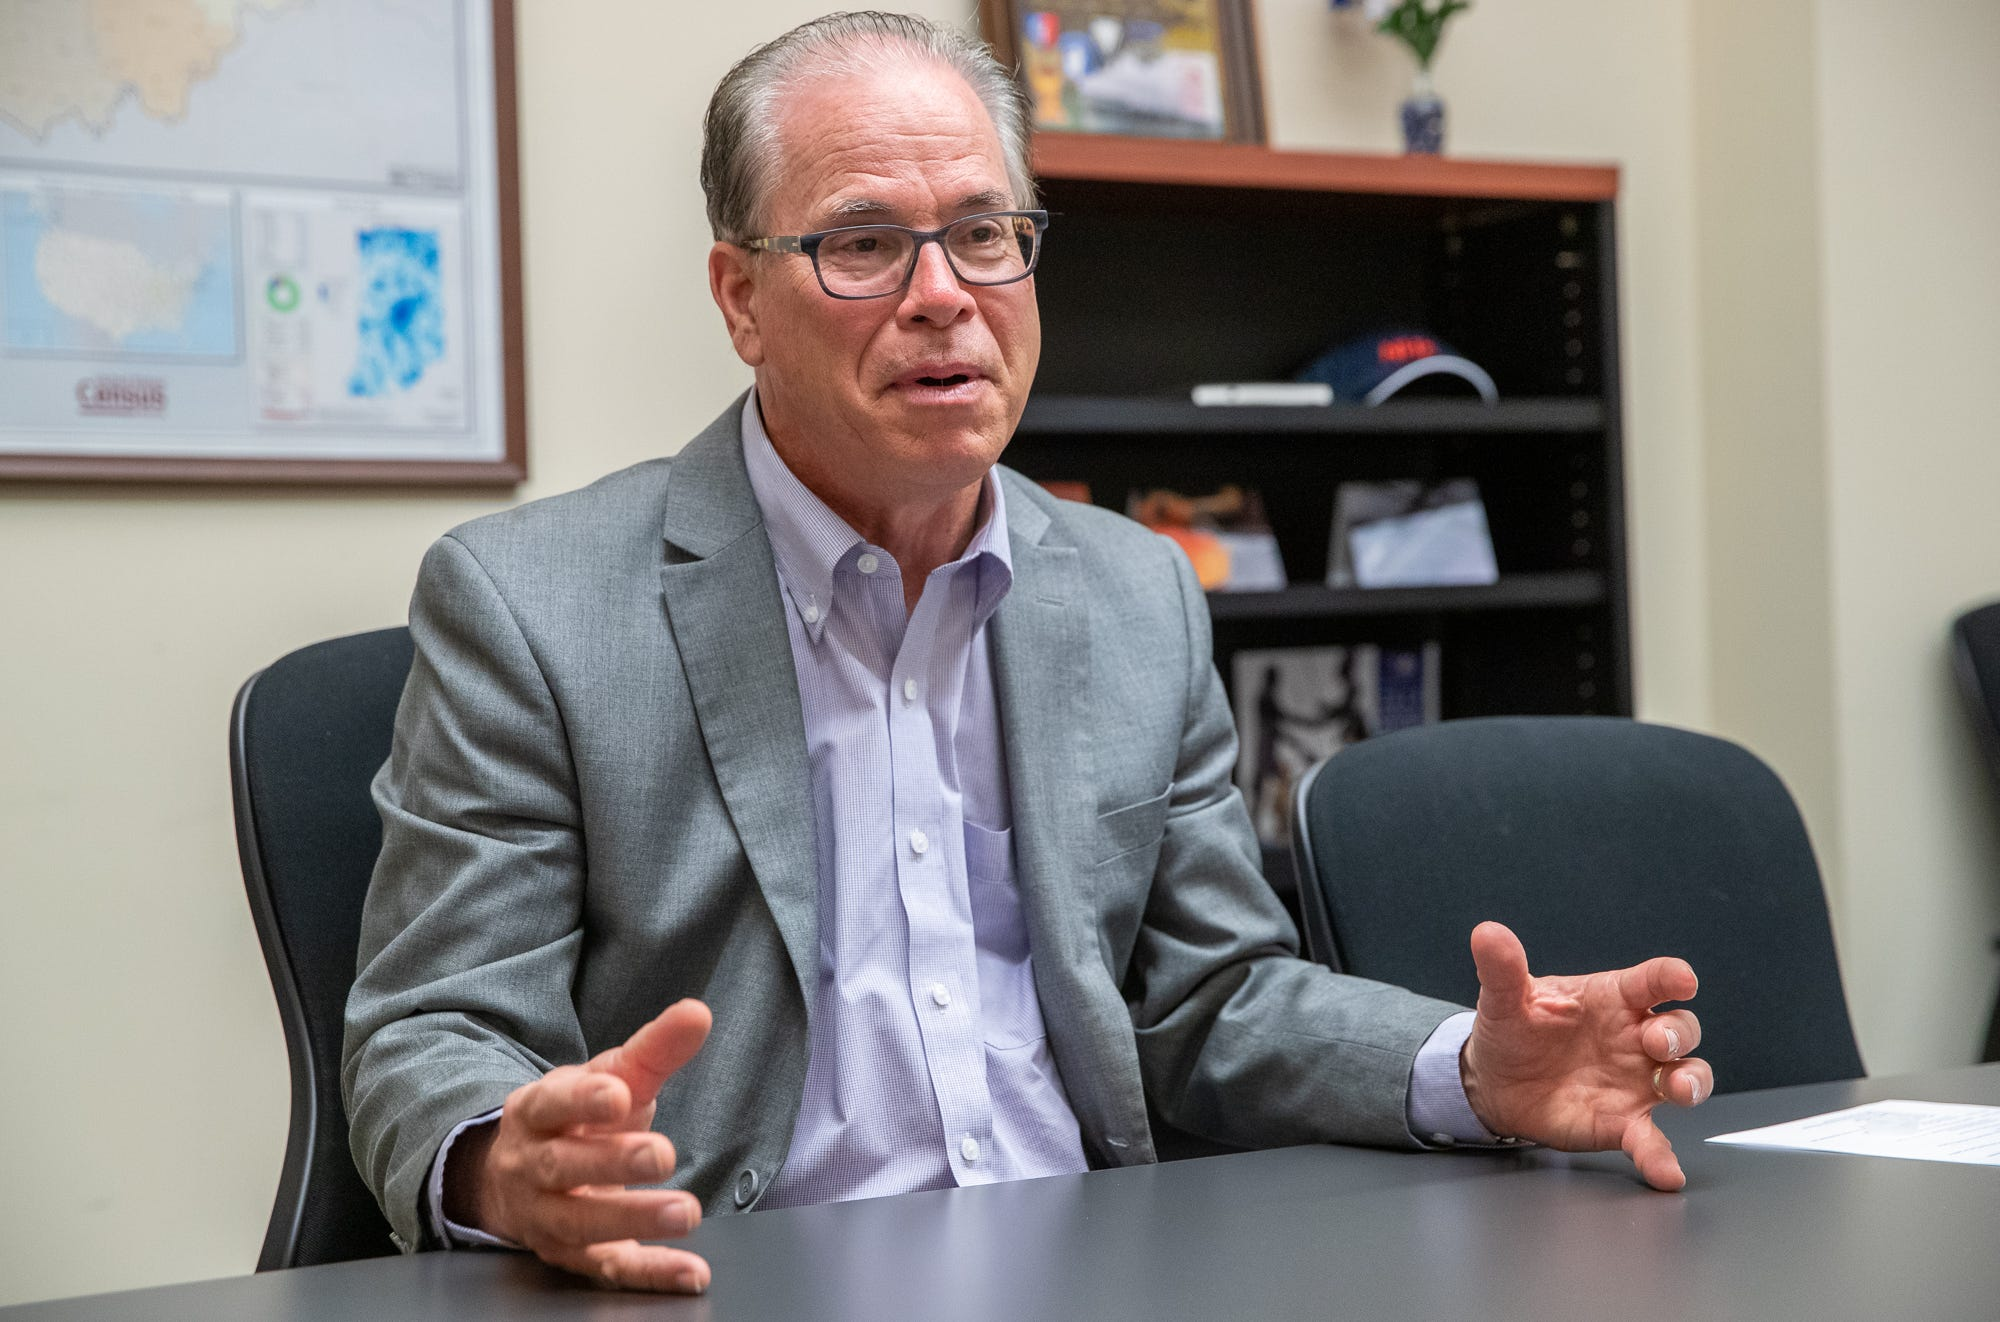 Sen. Mike Braun speaks on bill to limit emergency power of Indiana Gov. Eric Holcomb